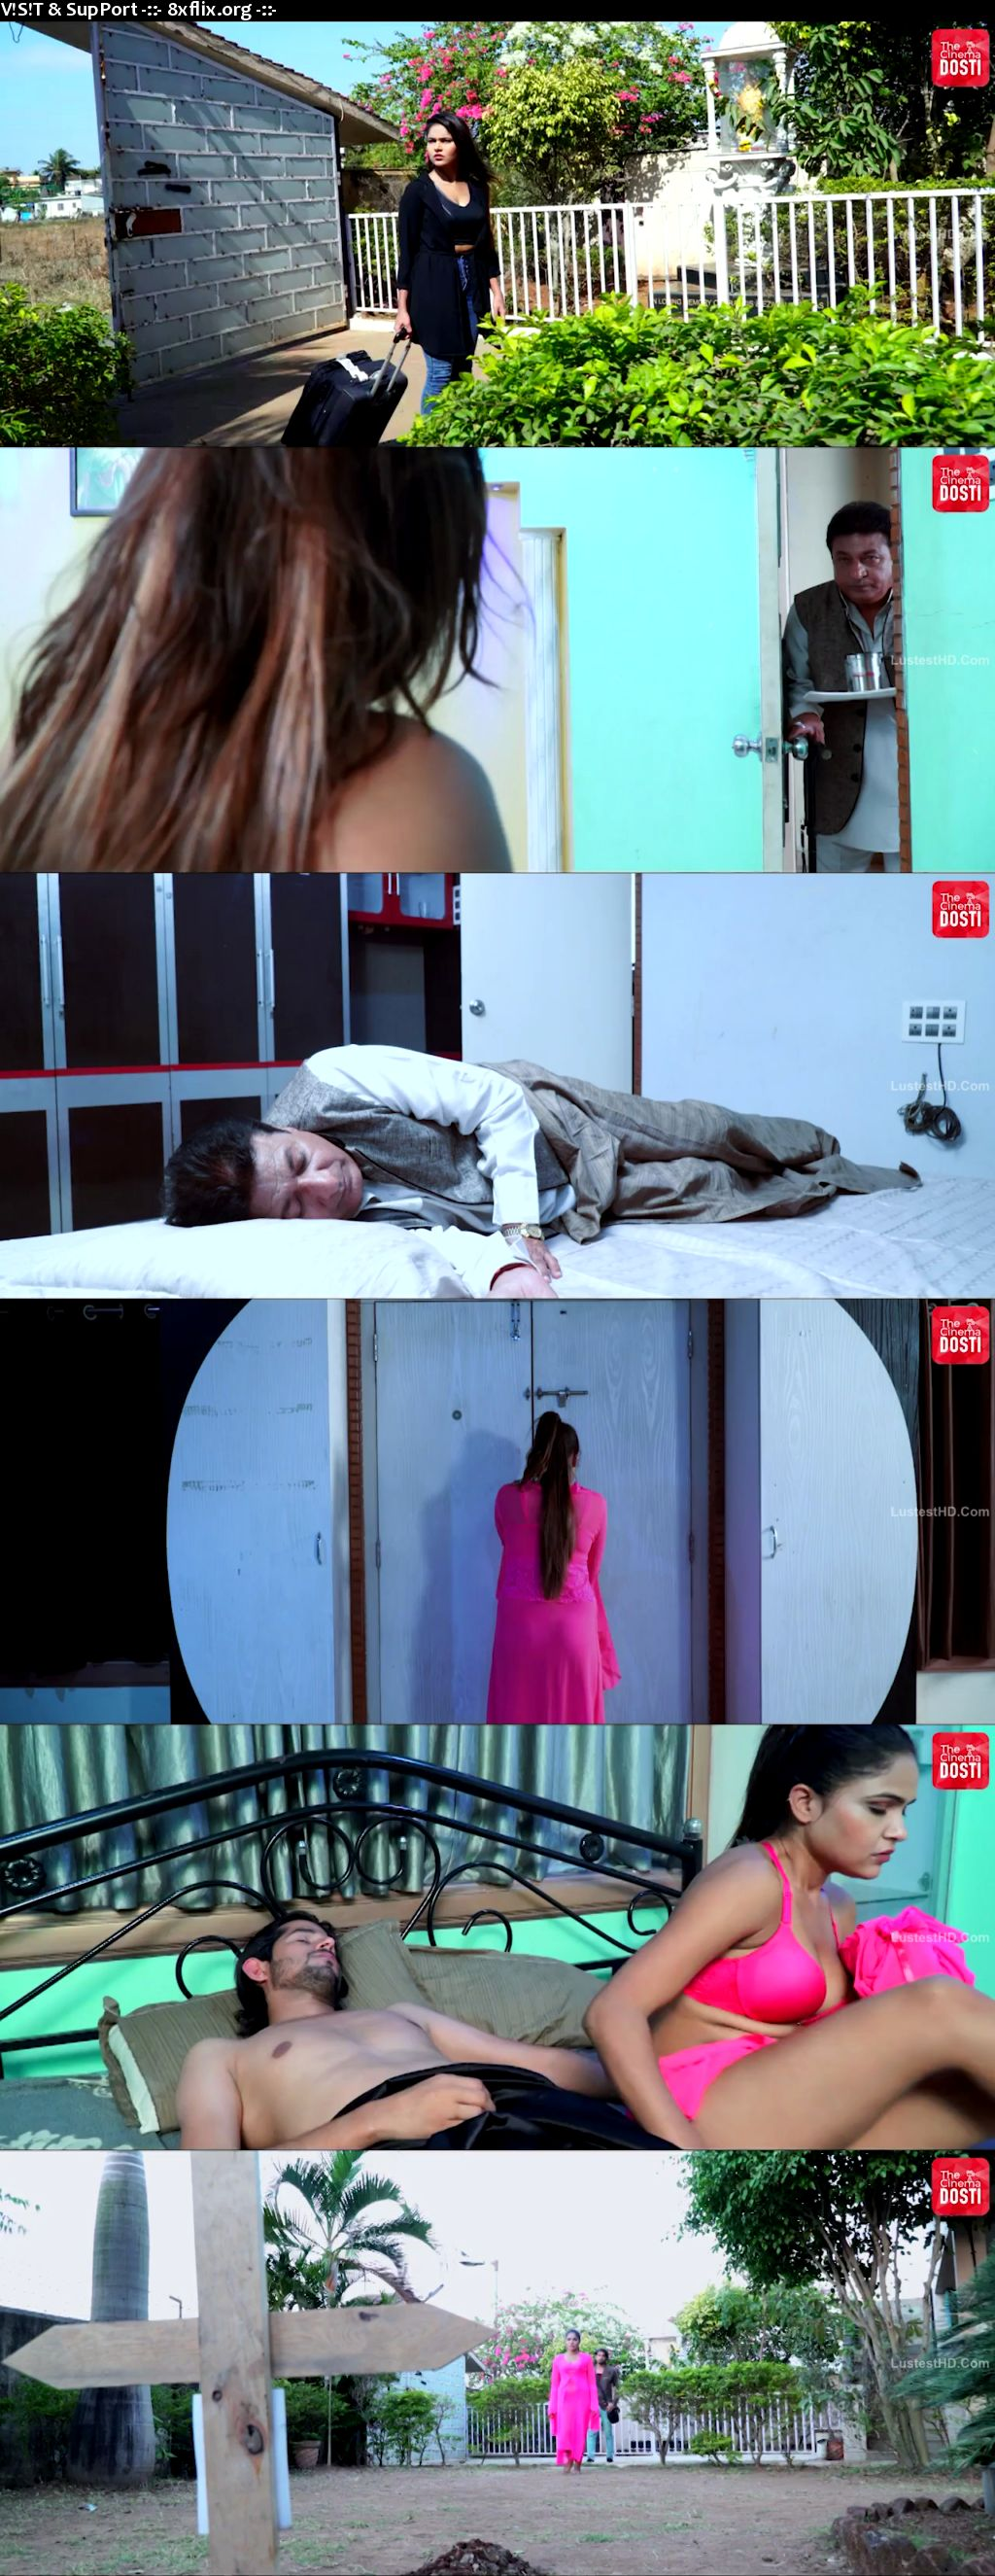 18+ Jism 2020 Full Hindi HOT Movie Download 720p HDRip